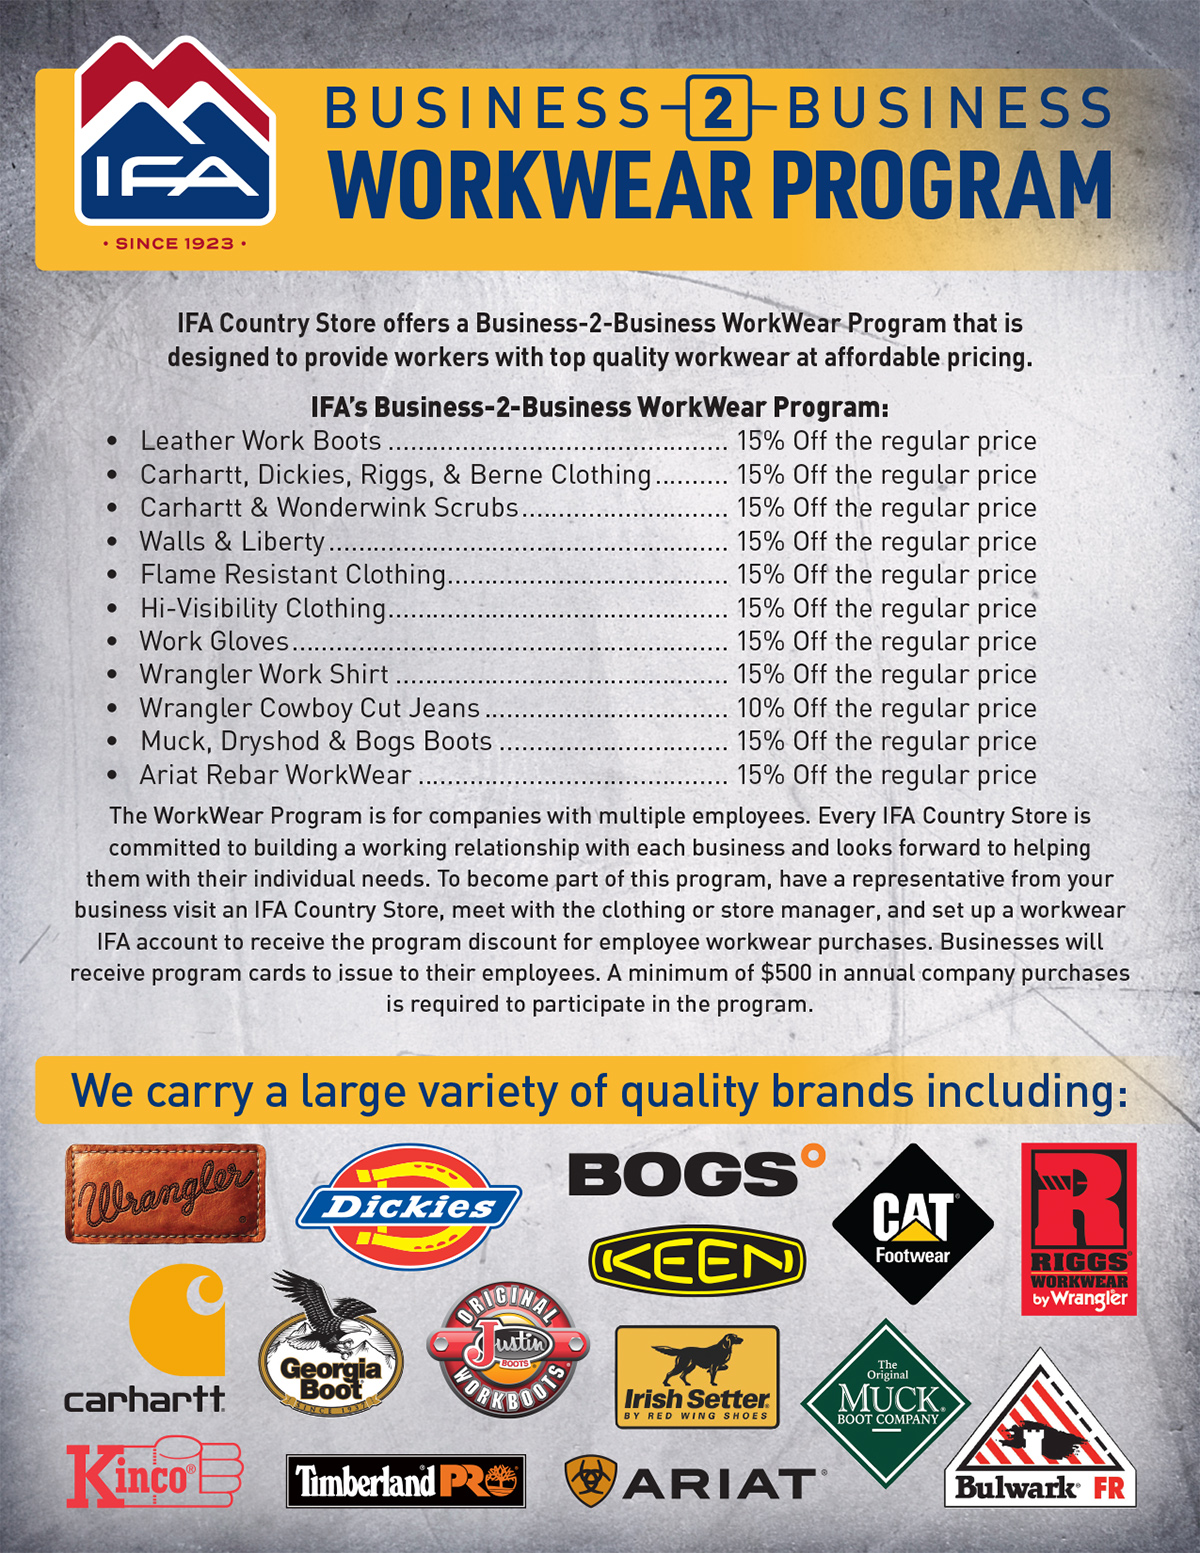 Good for Business: IFA's B2B Workwear Program - IFA Country Stores